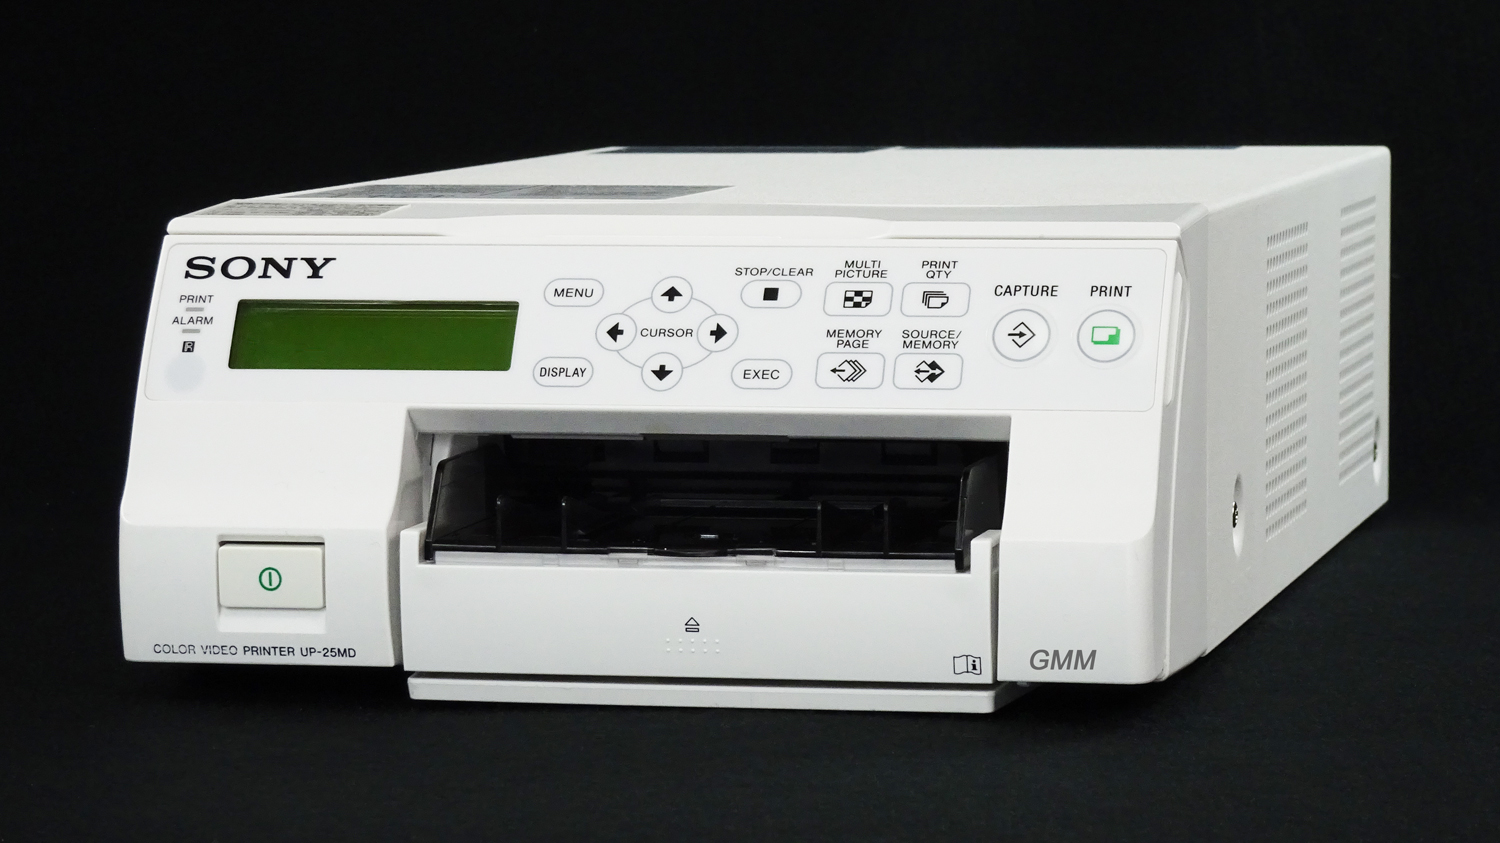 SONY Color Video Printer UP-25MD